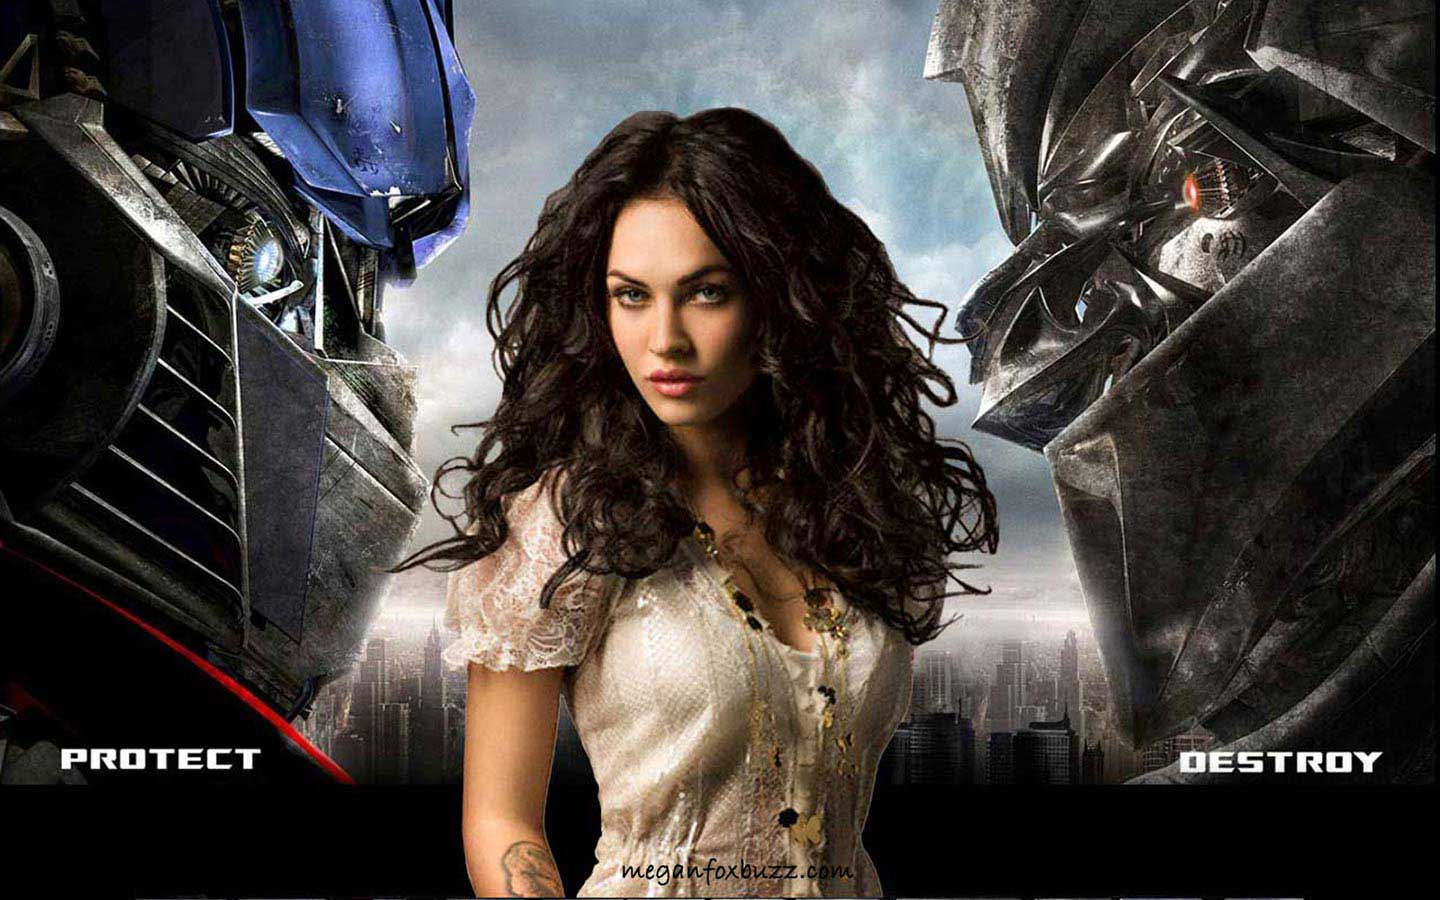 transformer Megan Fox Wallpapers Hot Celebrity Hollywood